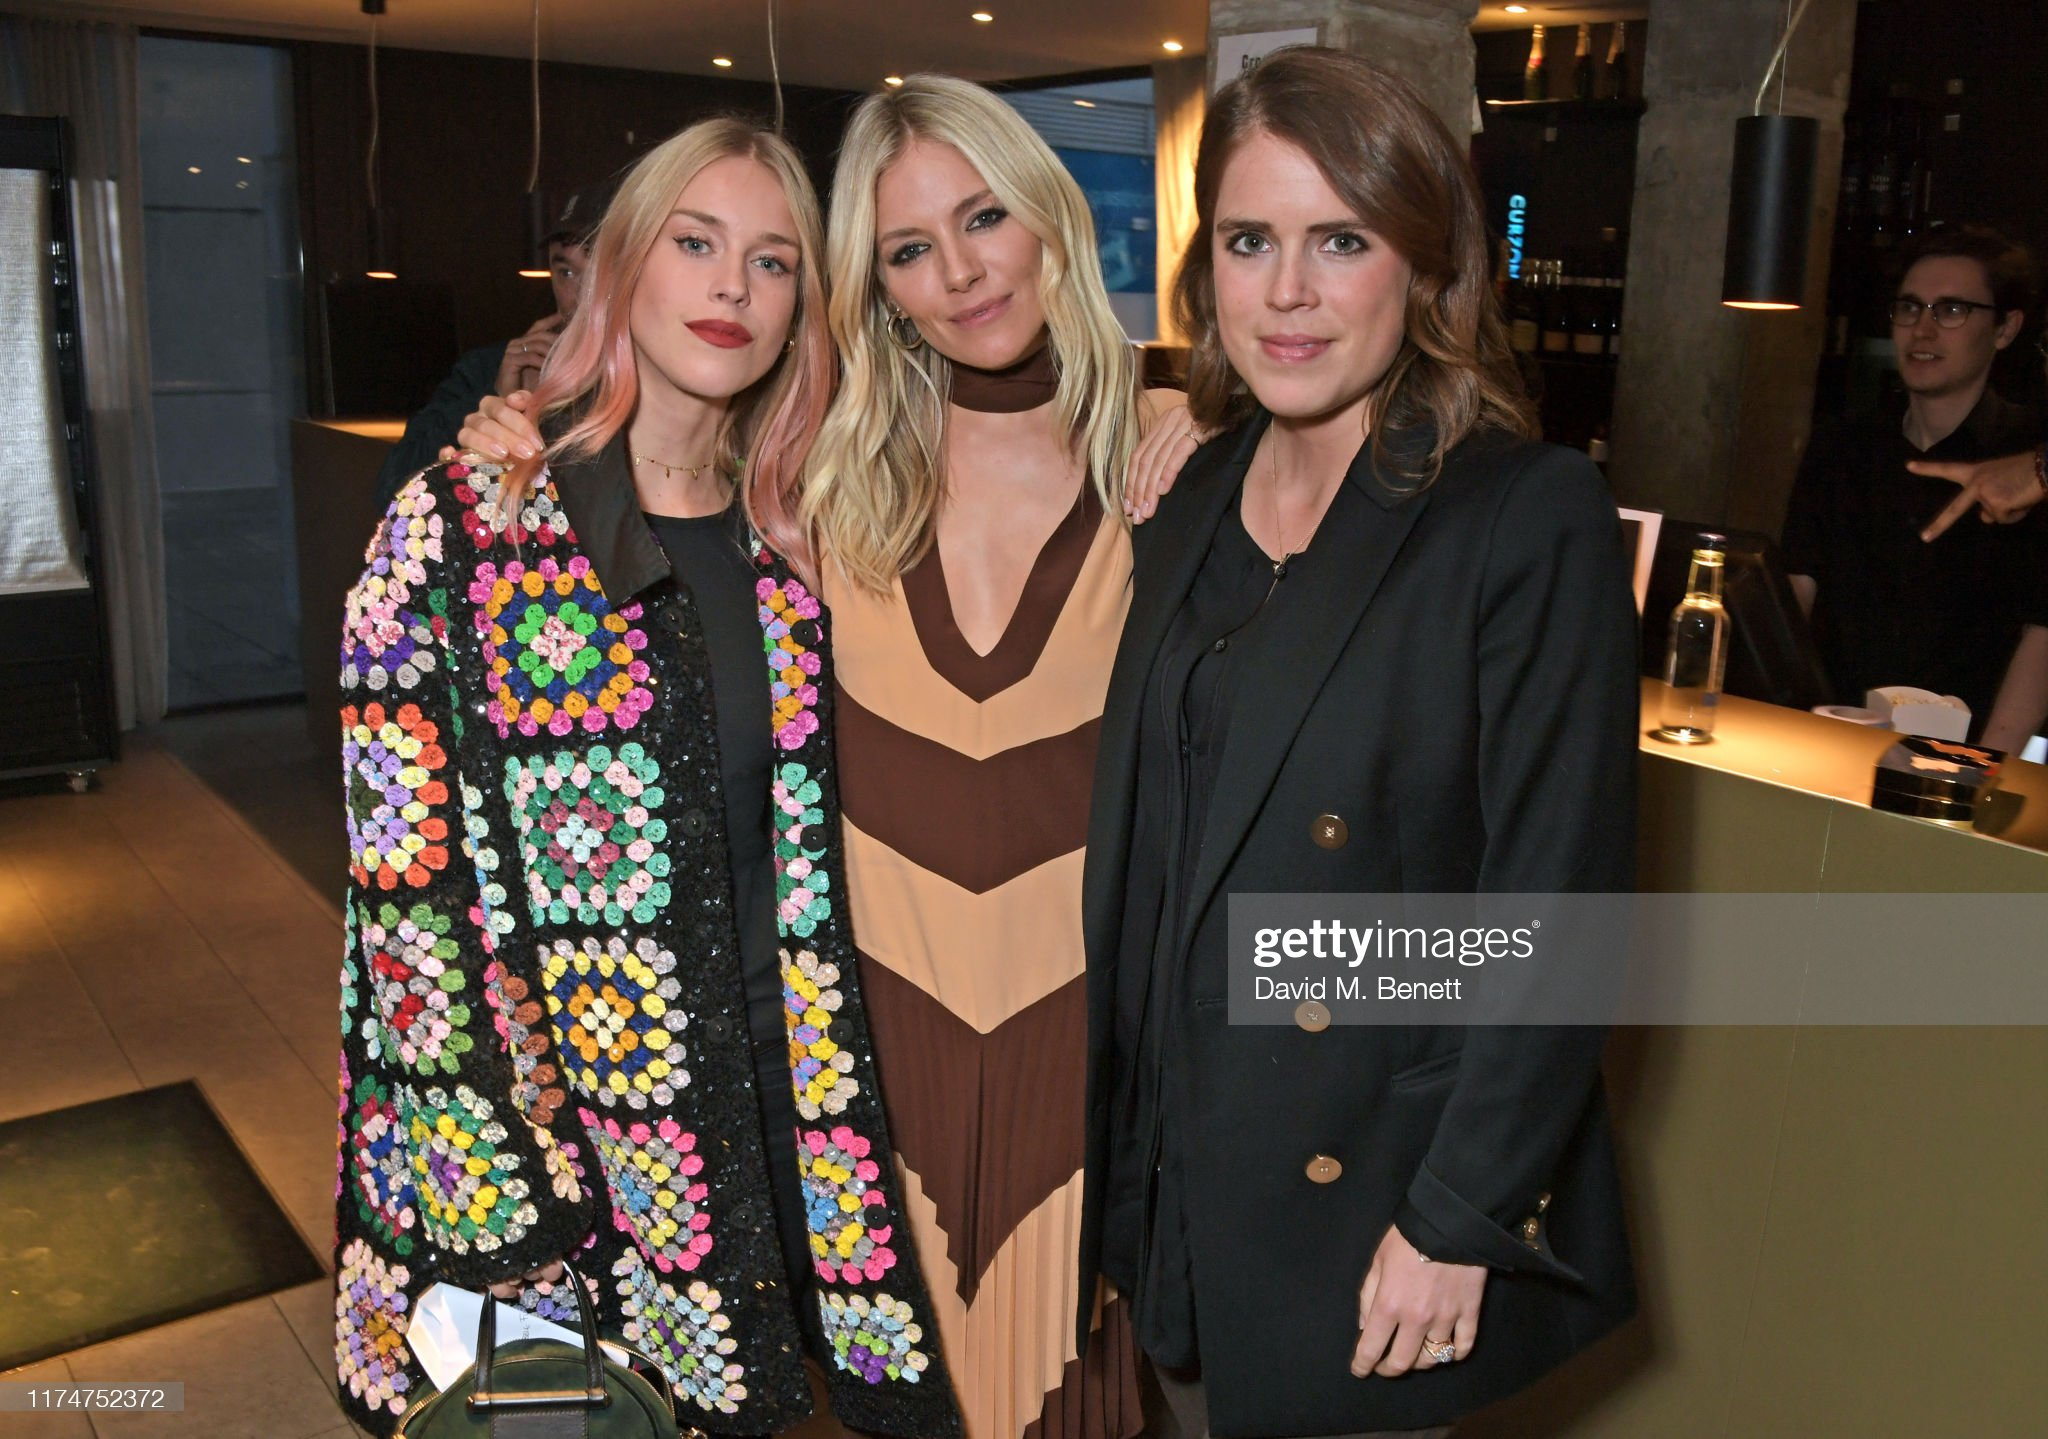 https://media.gettyimages.com/photos/mary-charteris-sienna-miller-and-princess-eugenie-of-york-attend-a-picture-id1174752372?s=2048x2048